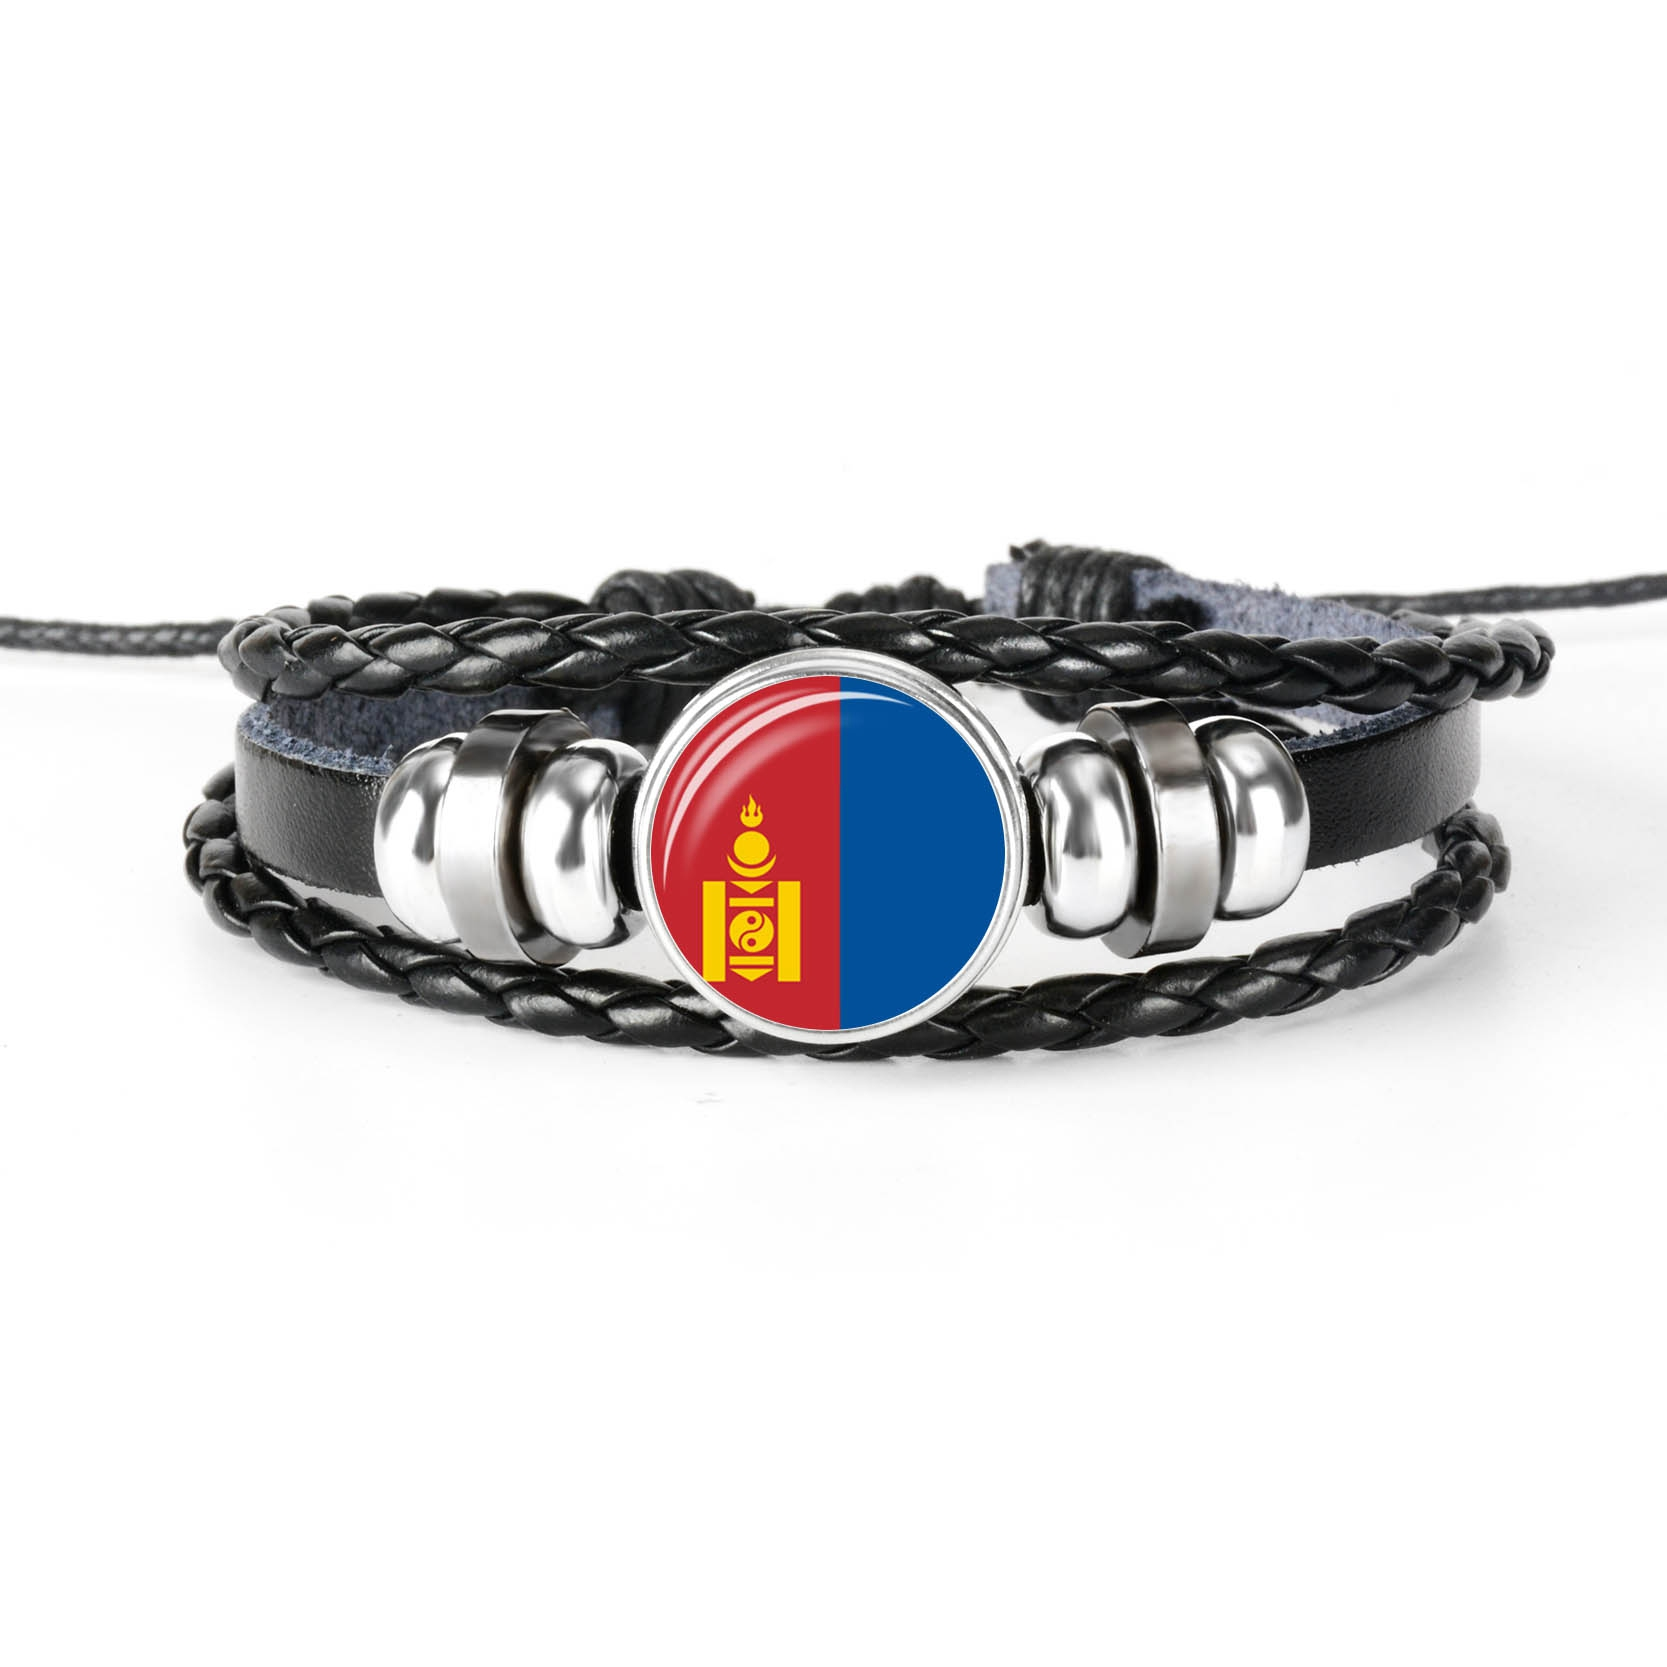 MONGOLIA JAPAN NORTH KORE SOUTH KOREA East Asia National Flag Bracelet image